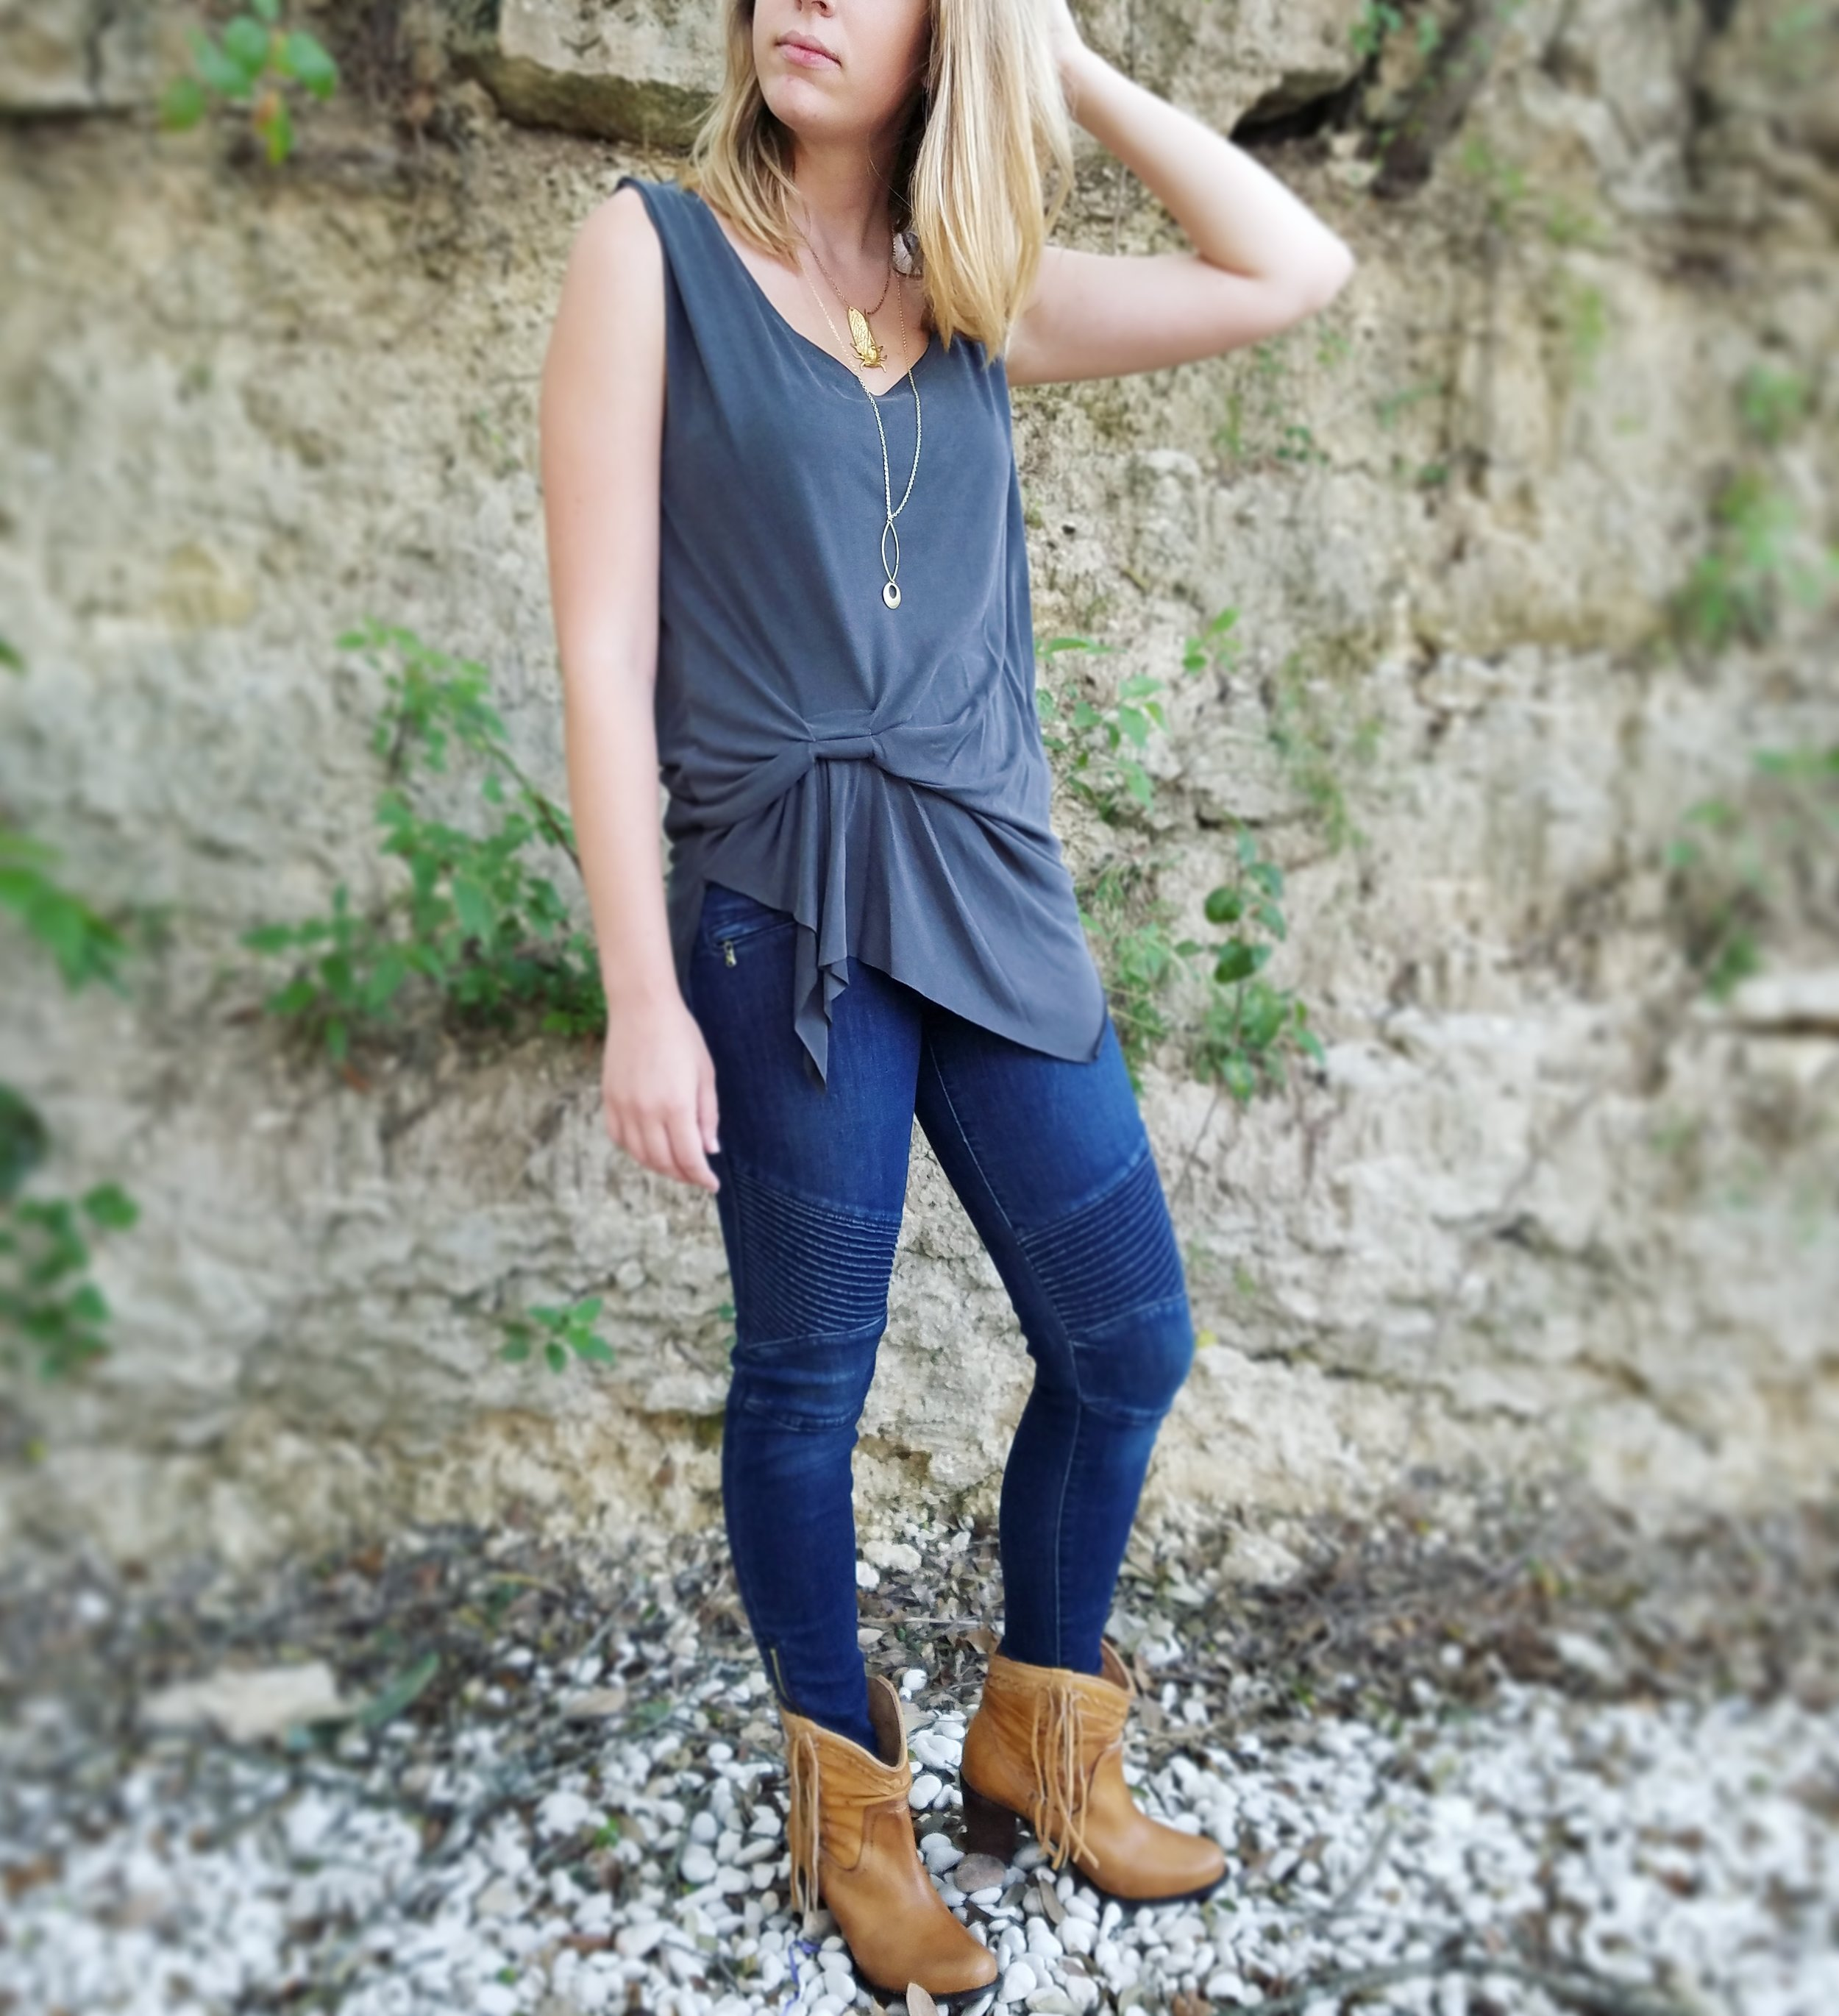 slouchy black top outfit austin style